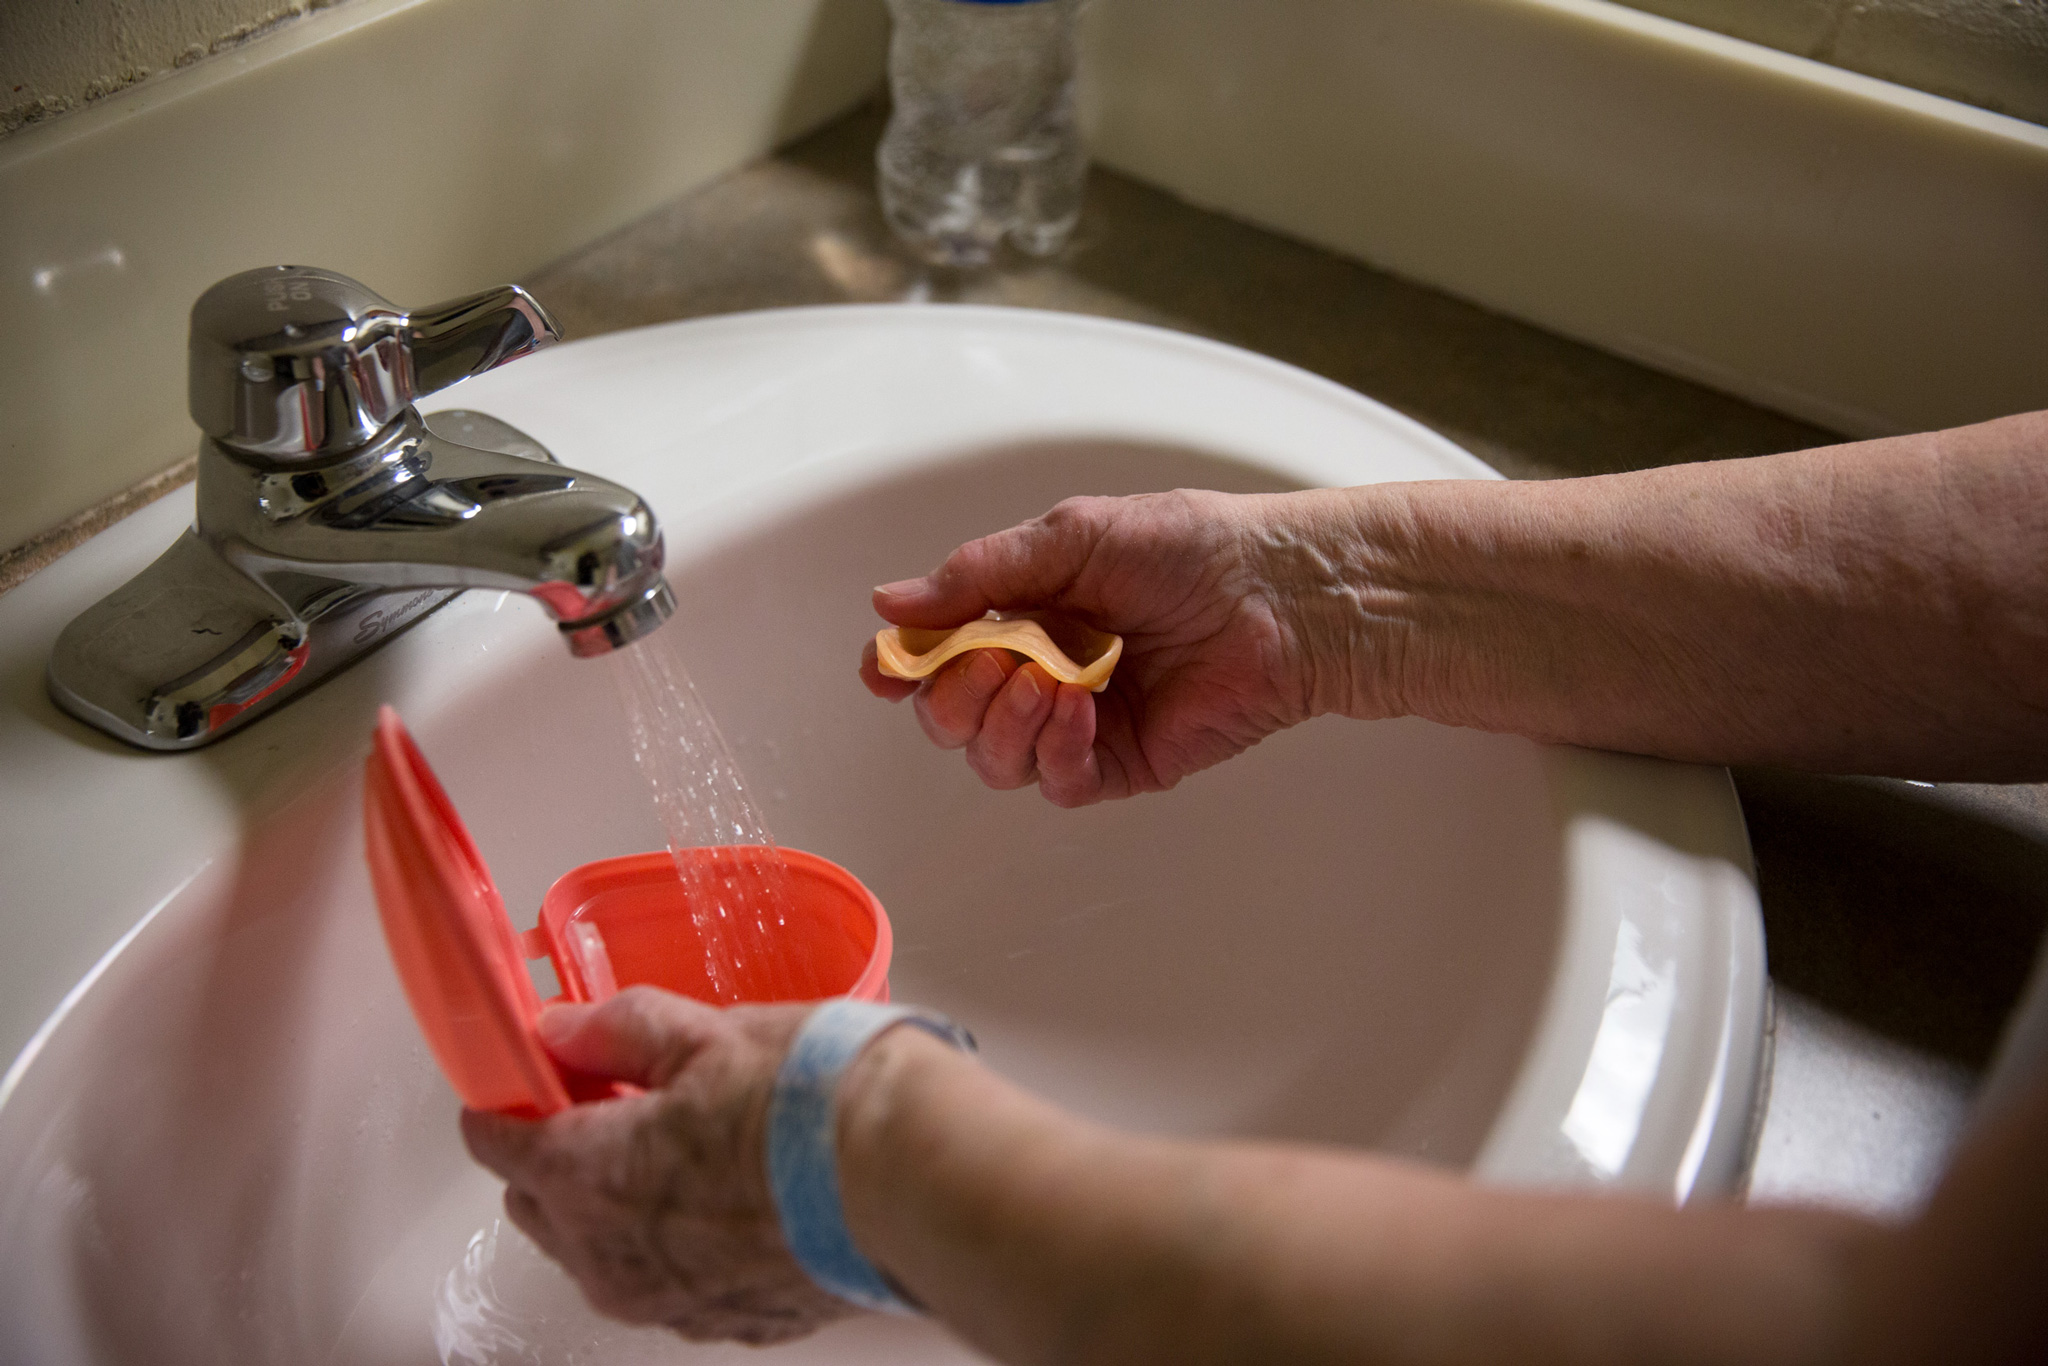 Norma, 76 years old, cleans her teeth after breakfast at Maine Correctional Center.